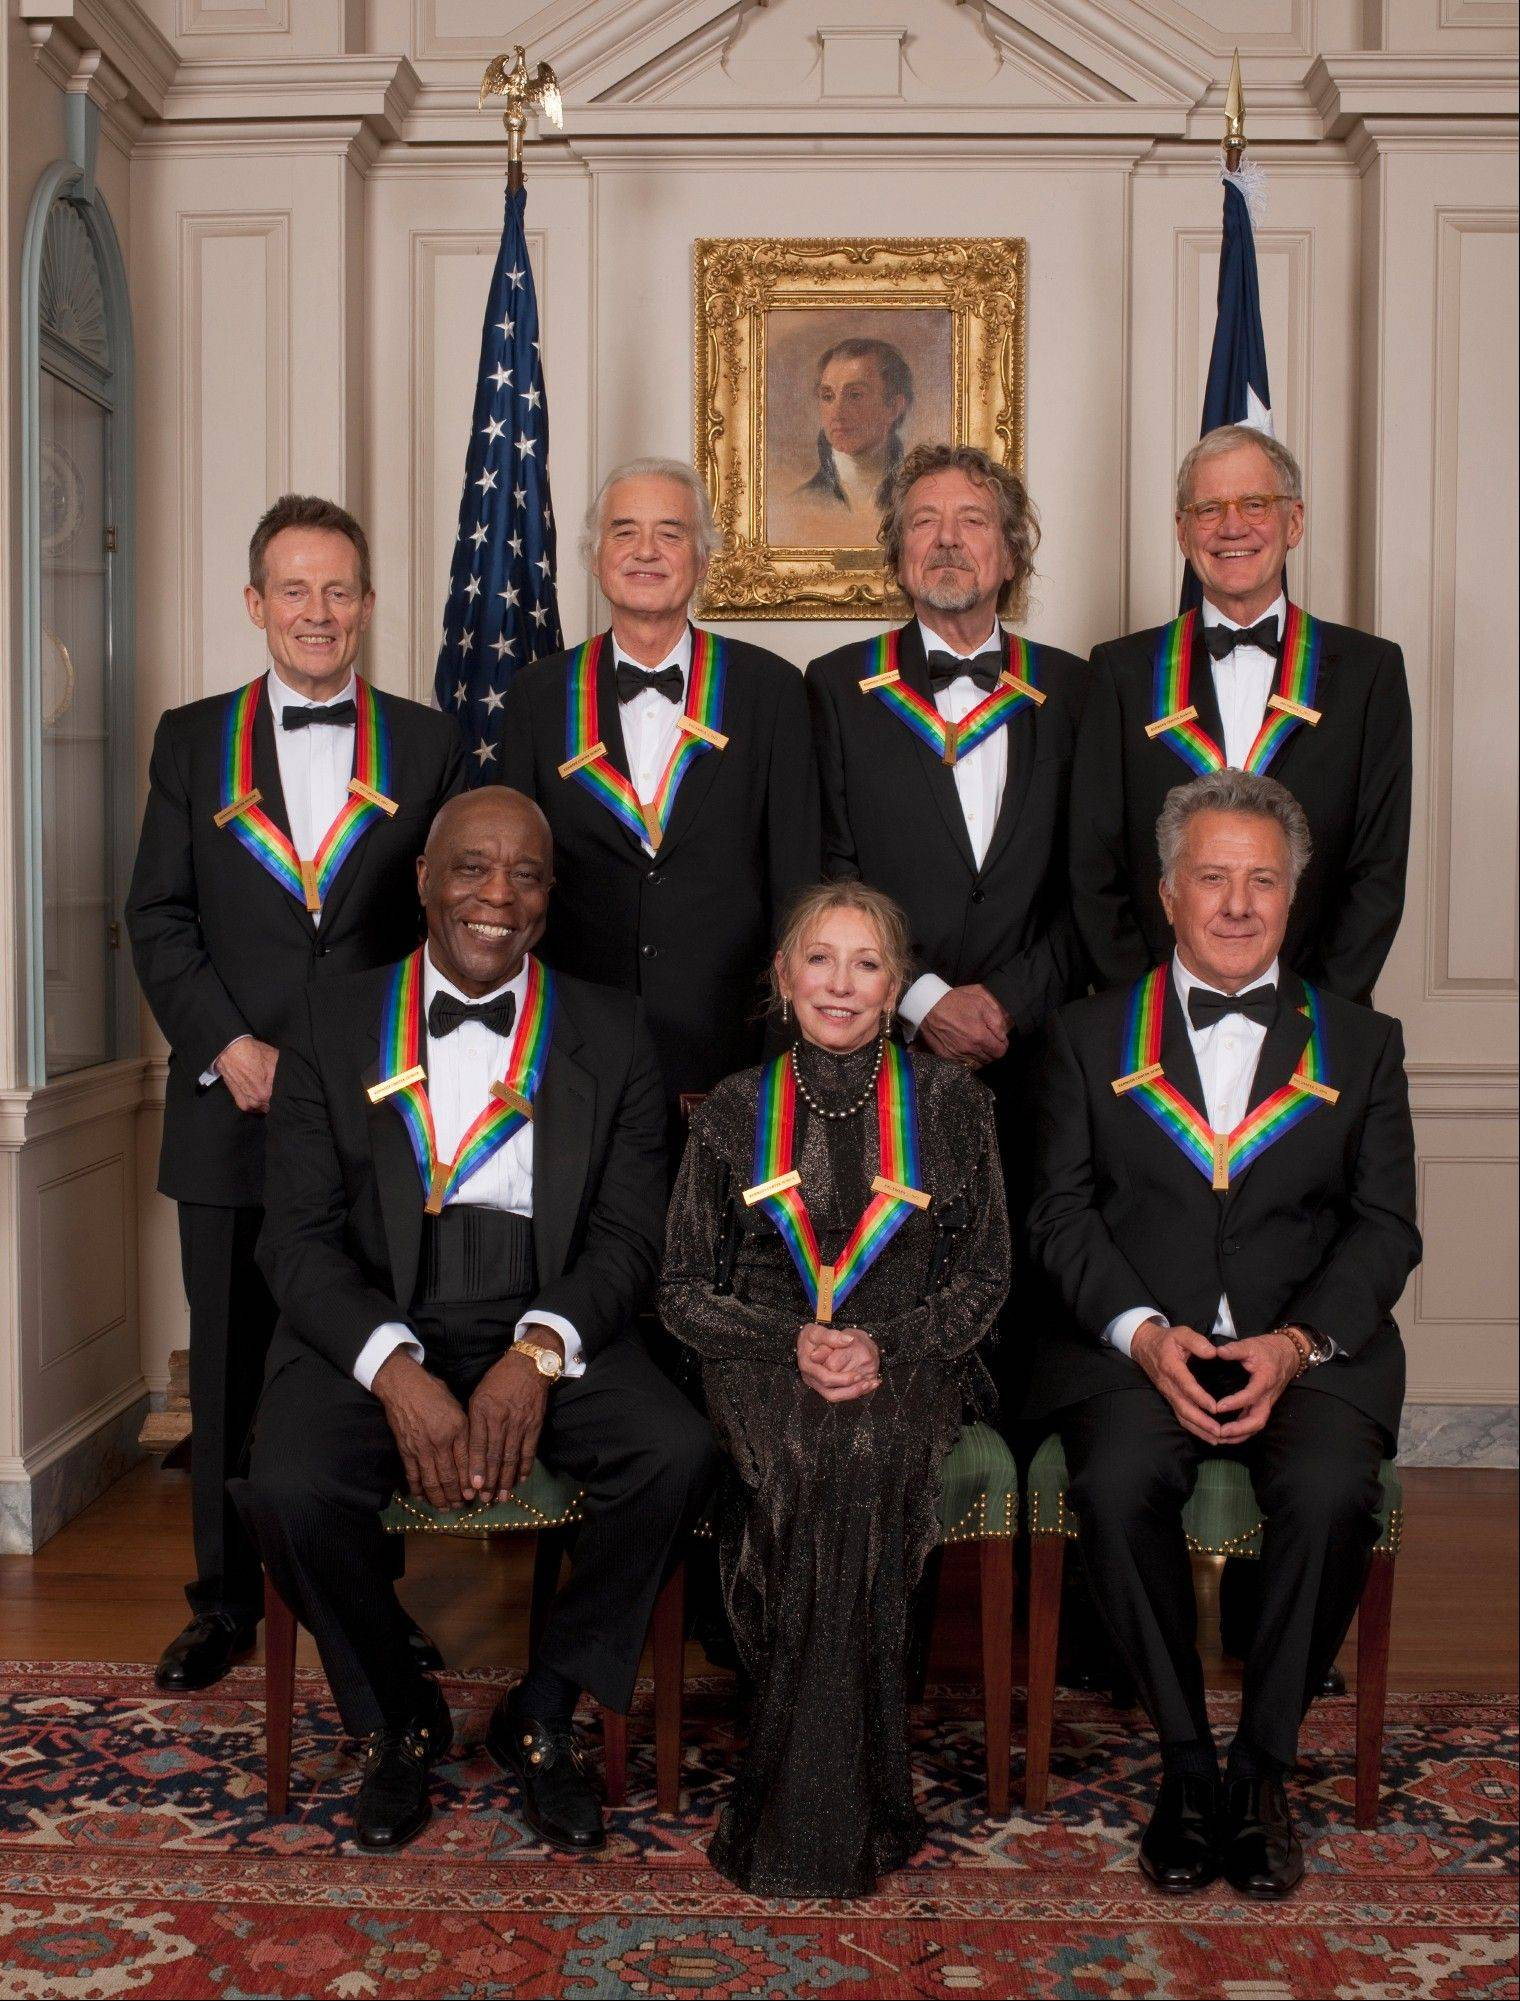 """The 35th Annual Kennedy Center Honors"" this year celebrates the accomplishments of Chicago bluesman Buddy Guy, front left, ballerina Natalia Makarova, actor Dustin Hoffman, rock band Led Zeppelin and comedian David Letterman. The show will air Wednesday, Dec. 26, on CBS."